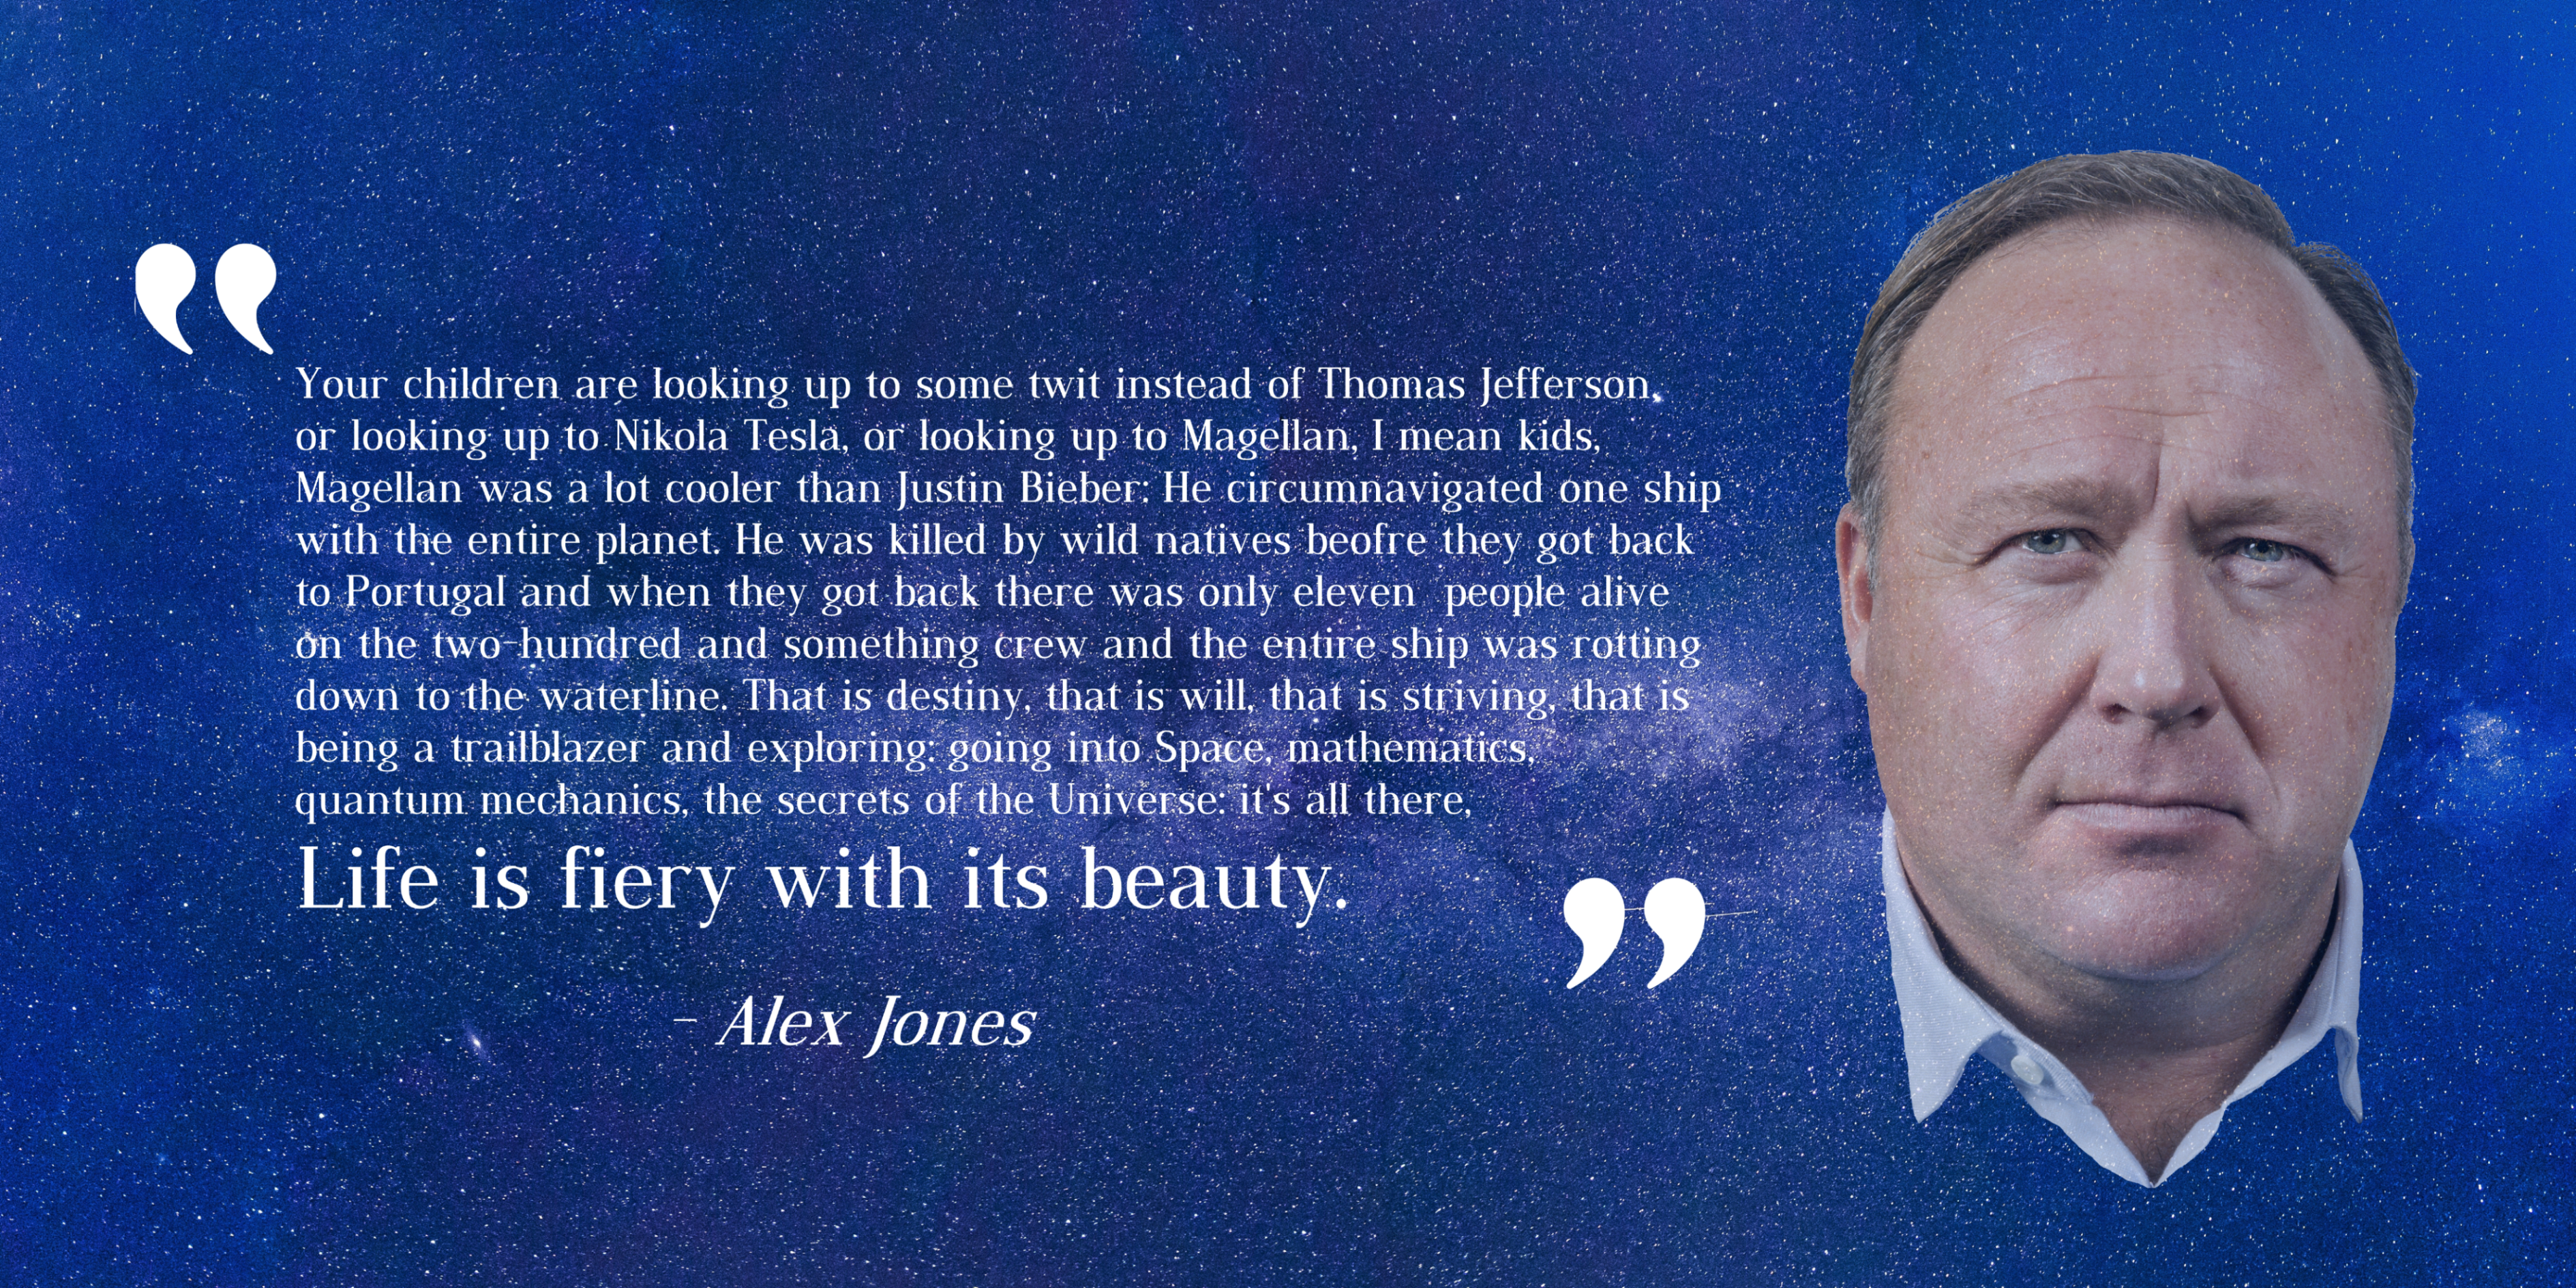 'Your children are looking up to some twit instead of…' – Alex Jones [3778X1889]